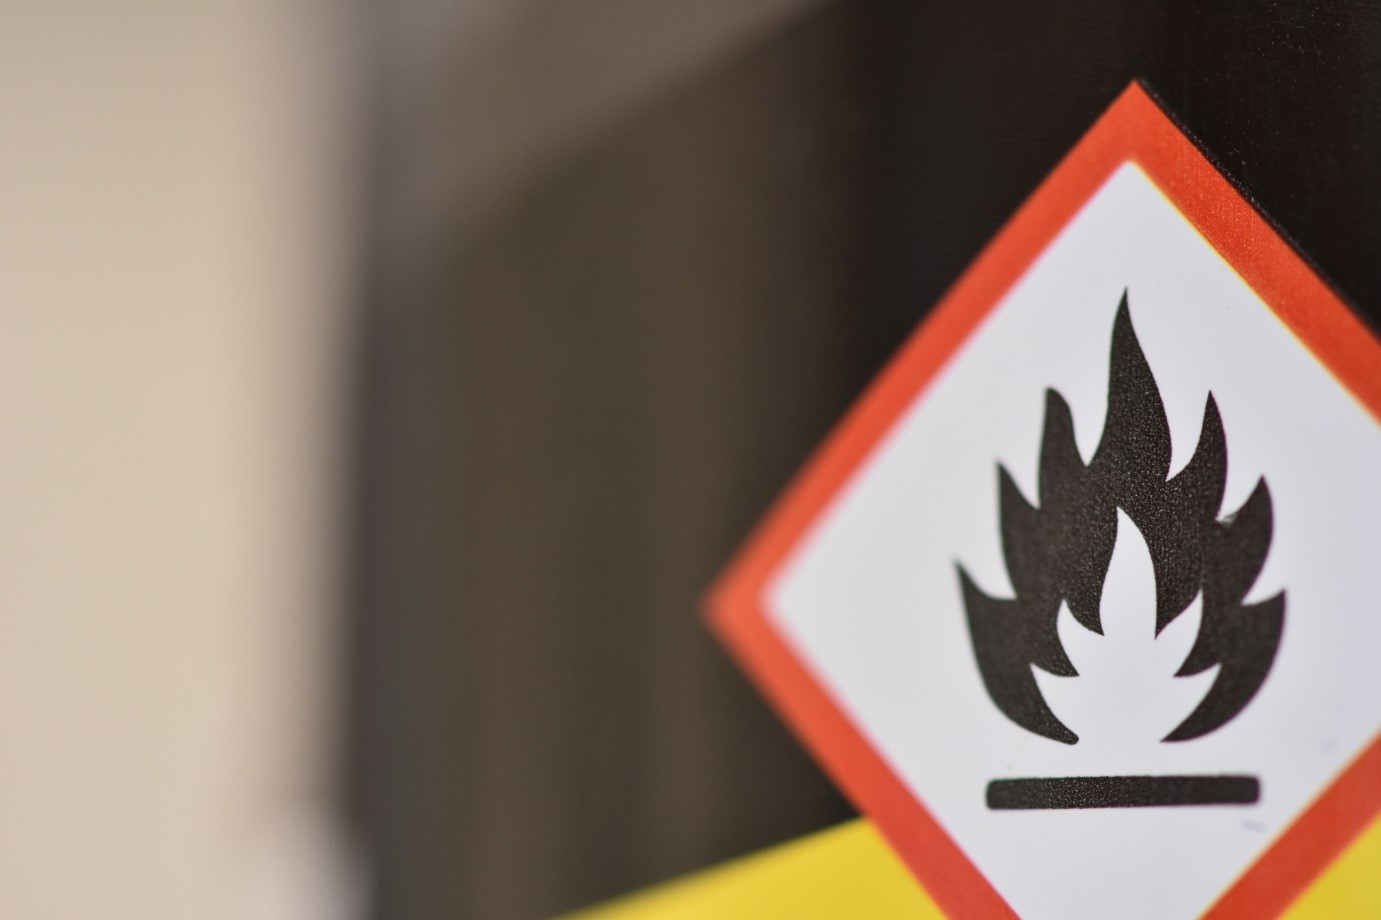 A Guide To Hazardous Chemicals In The Workplace